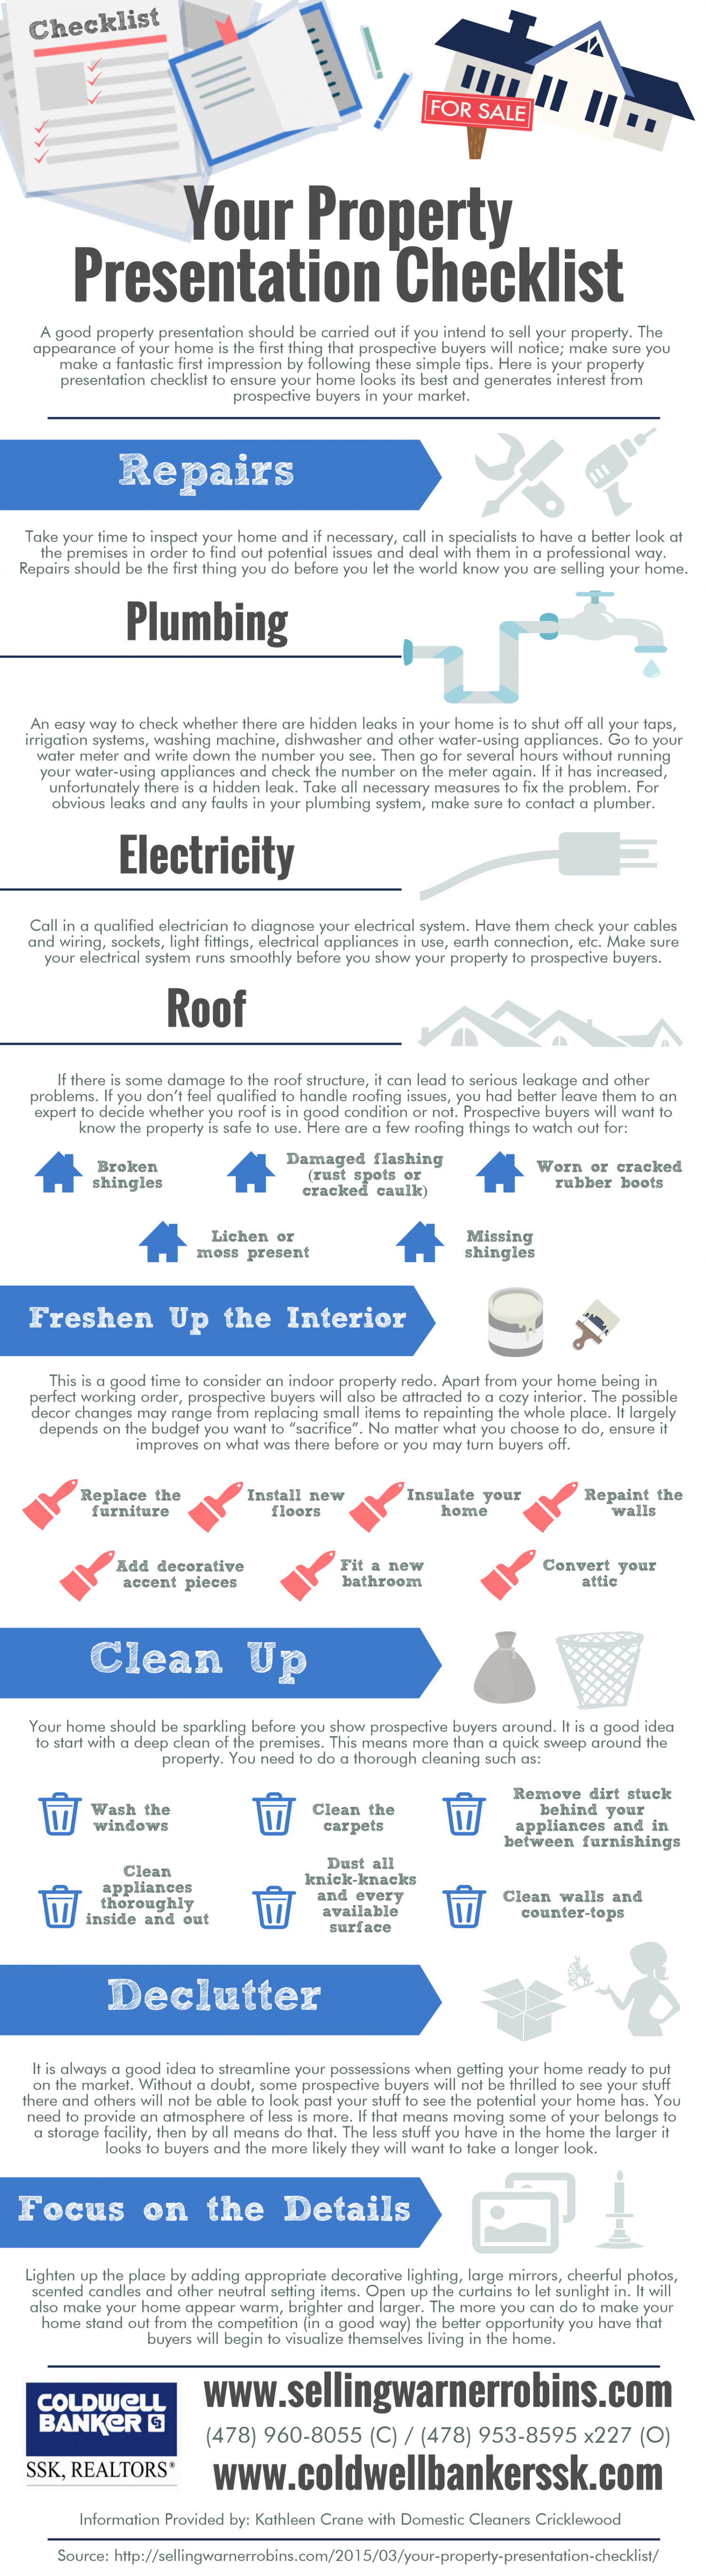 Your Property Presentation Checklist Infographic